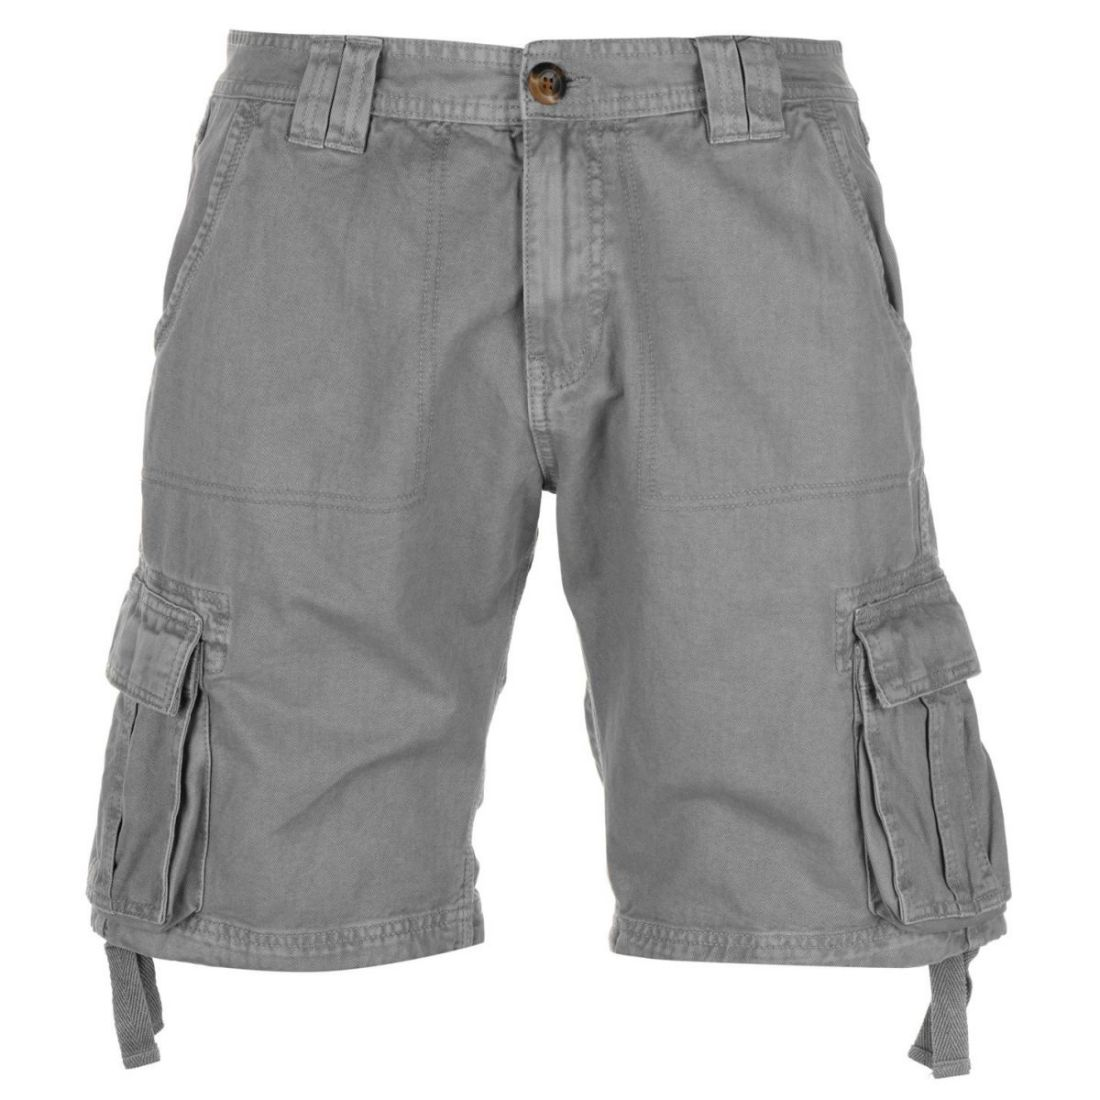 5a0b6ab7ce Image is loading SoulCal-Mens-Utility-Shorts-Cargo-Pants-Trousers-Bottoms